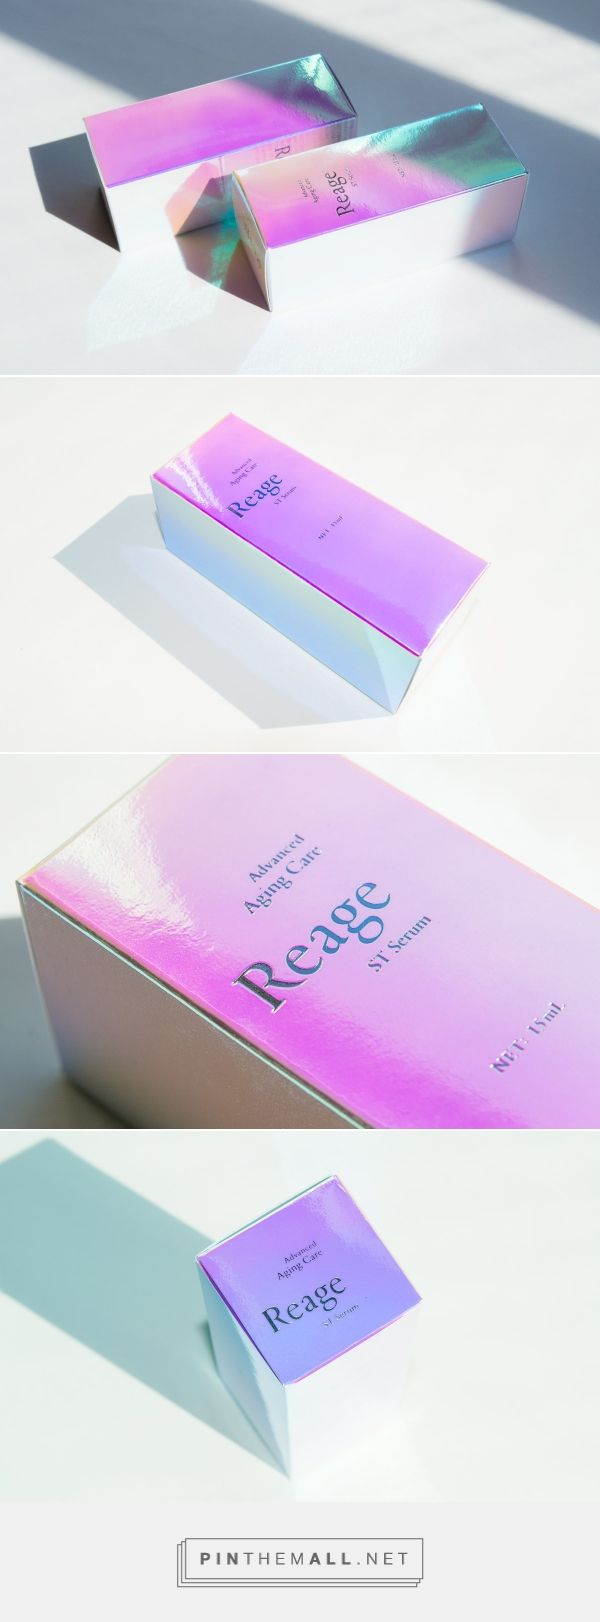 Fashion Packaging Design